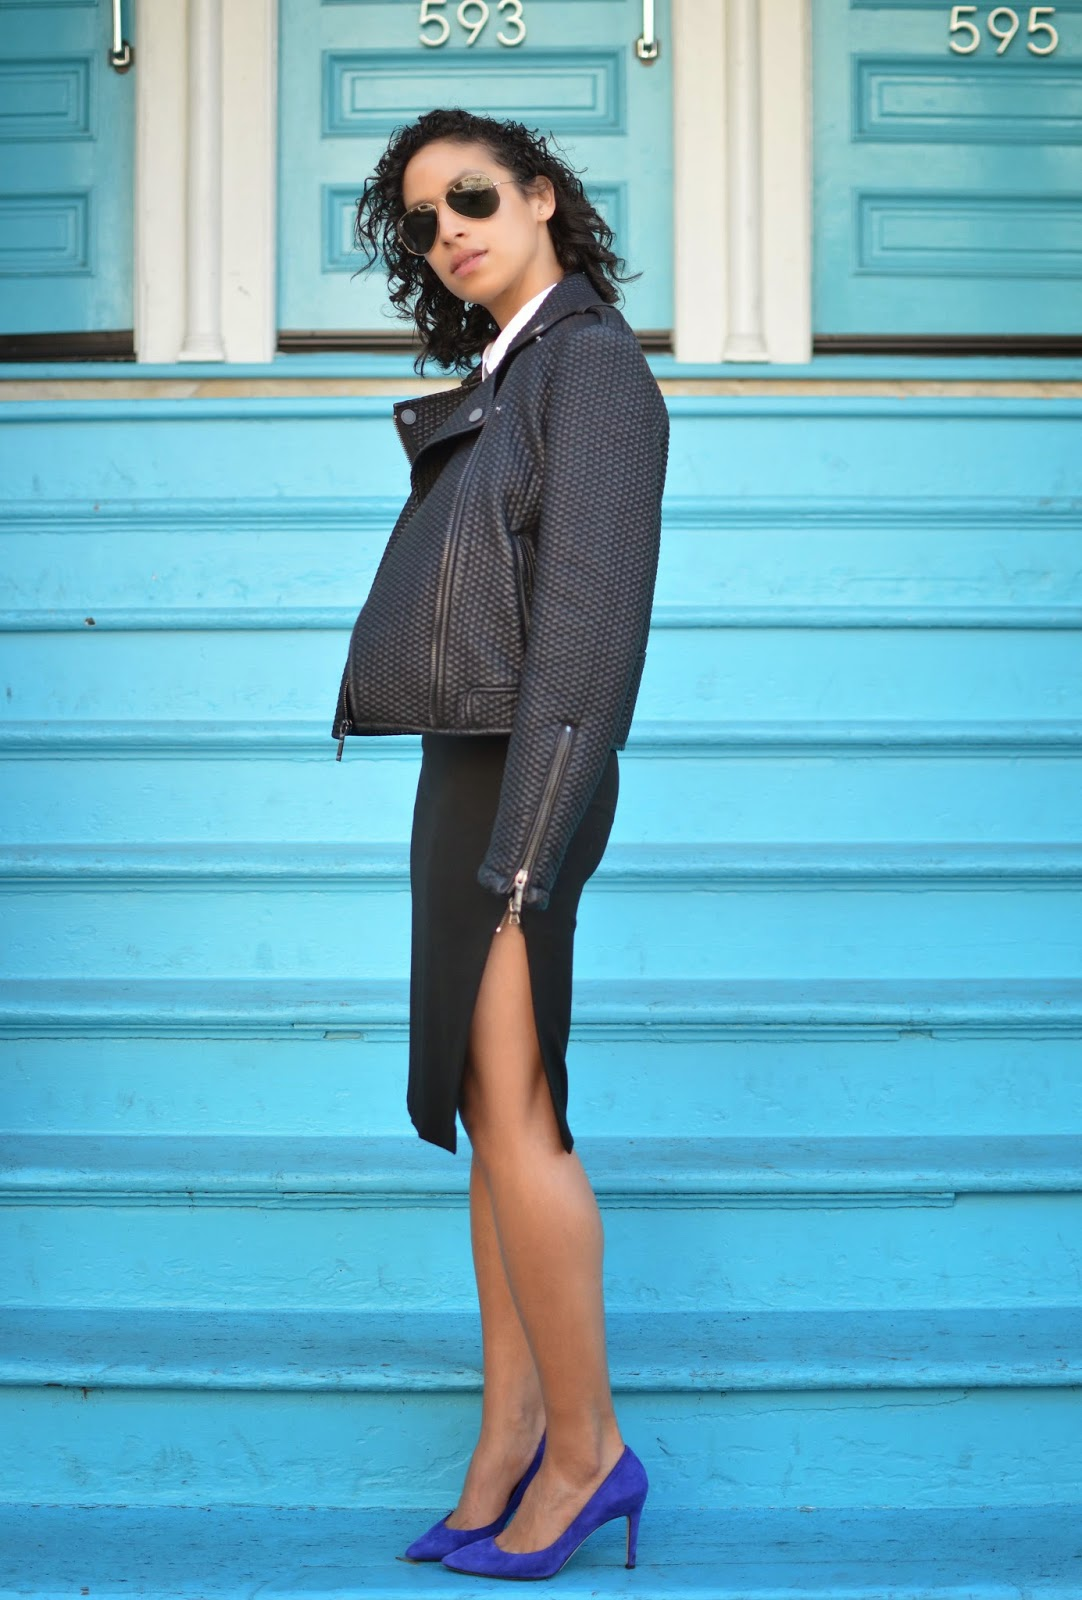 black leather moto jacket, BCBG MaxAzria leather moto, Proenza Schouler x Target, Zippered pencil skirt, short curly hair, J. Crew Everly pumps